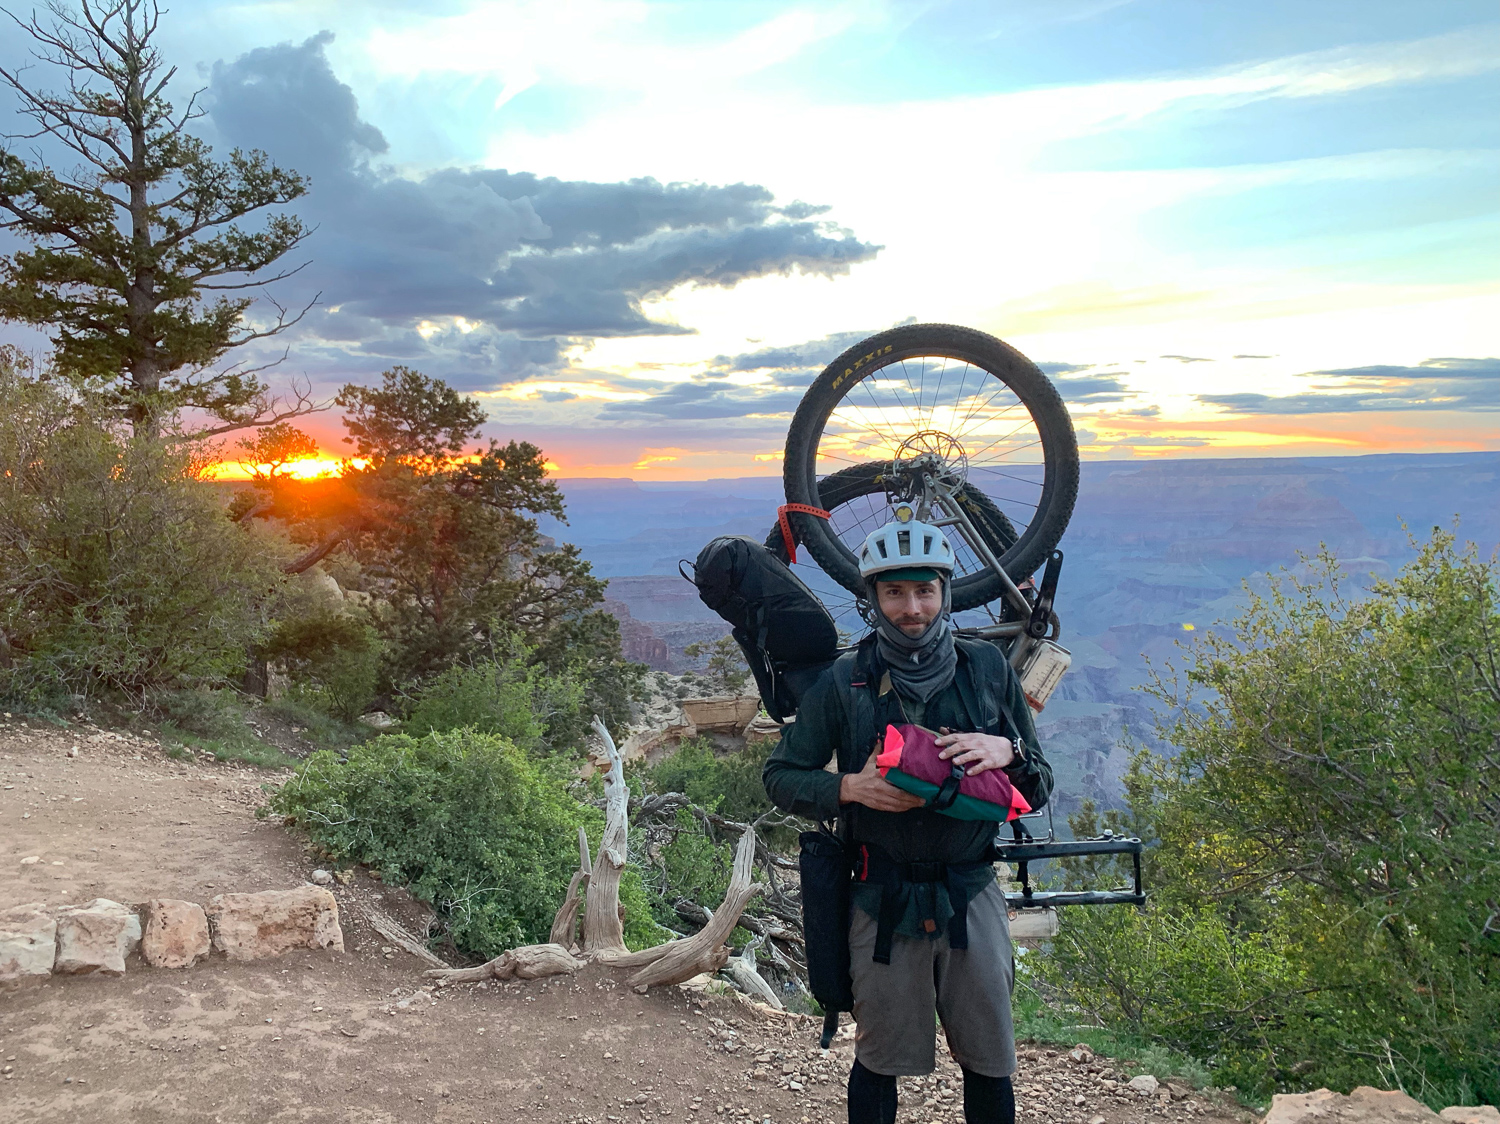 The AZTR requires your bike to be portaged through the section of the Grand Canyon.